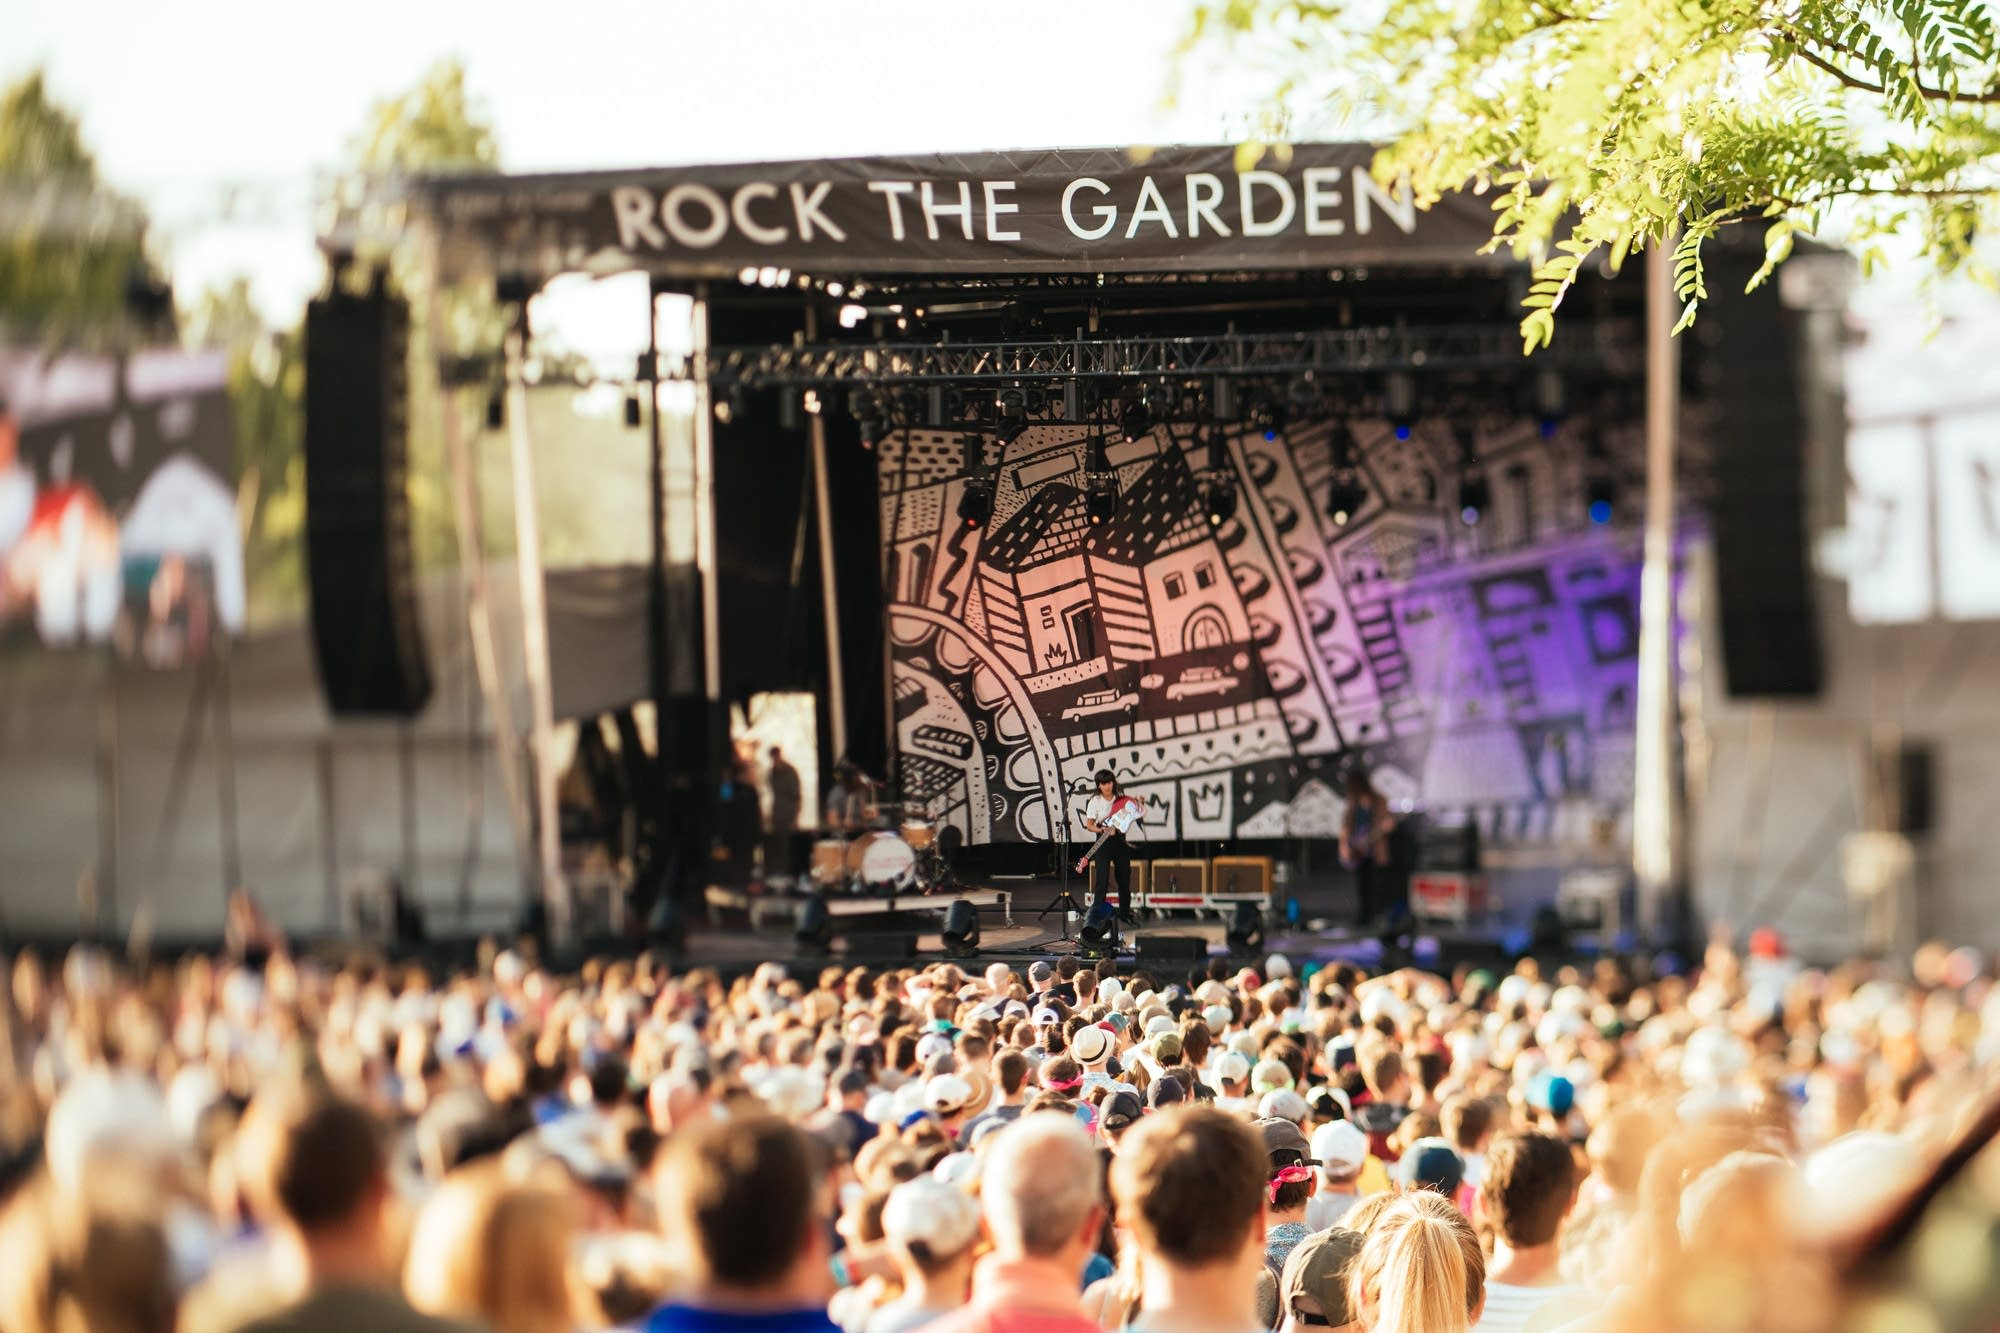 Courtney Barnett performs at Rock The Garden 2019